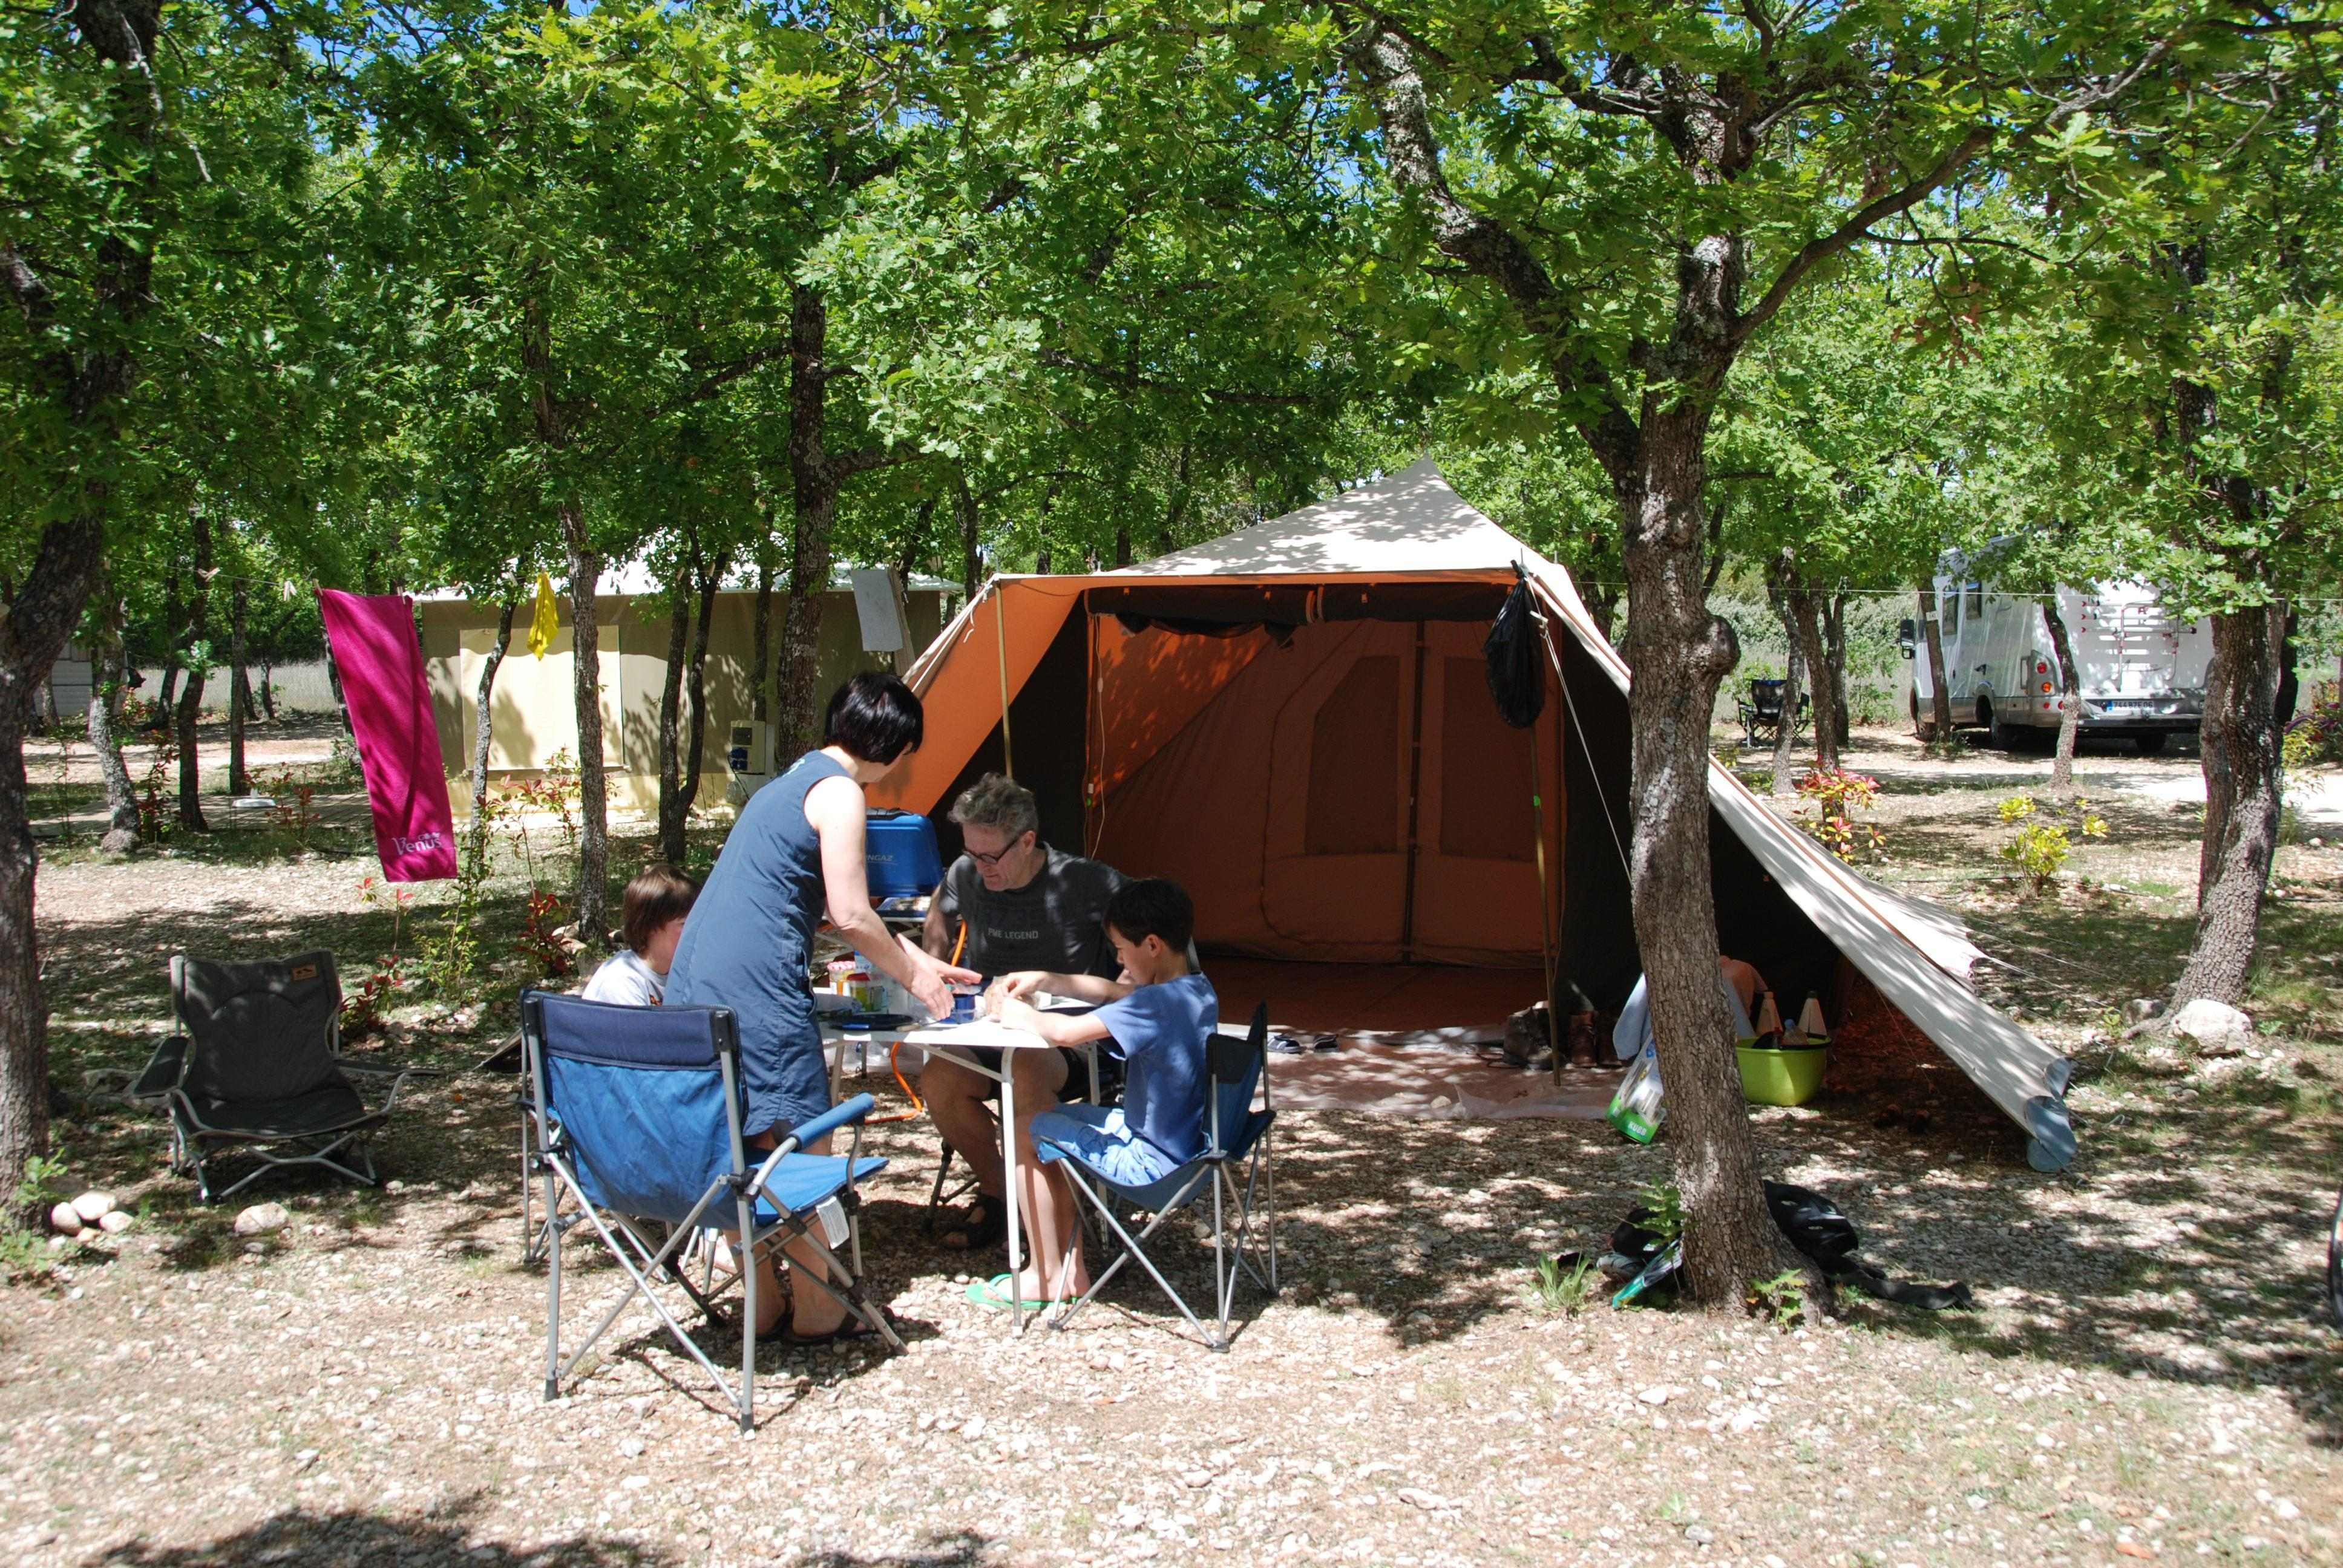 Emplacement - Emplacement En Camping - Camping Les Chênes Blancs